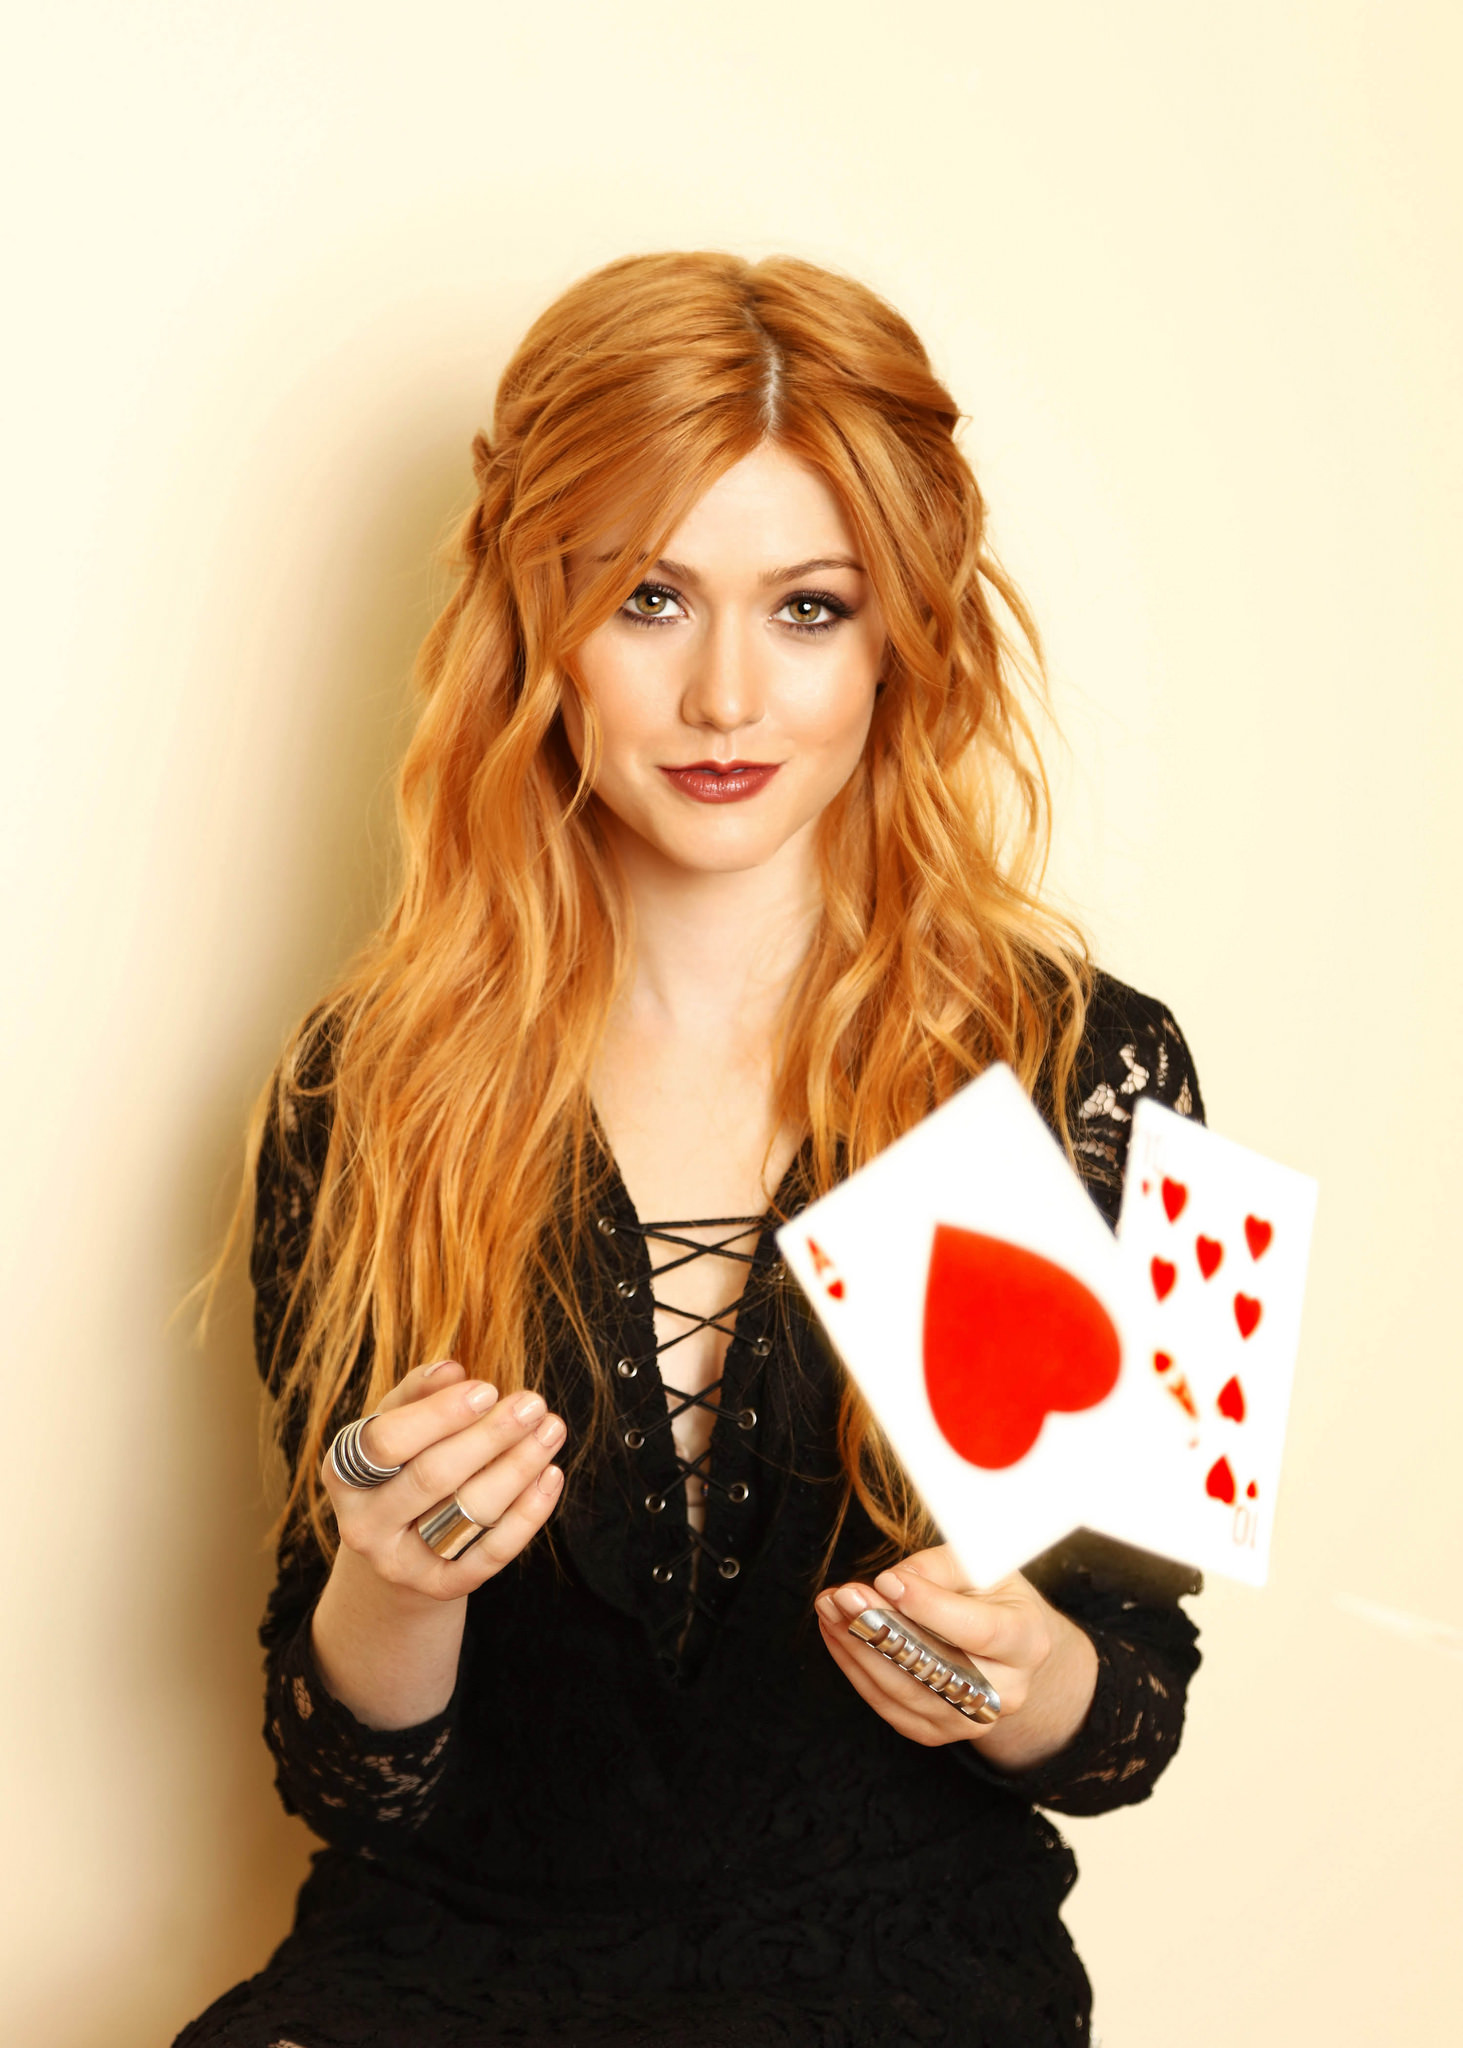 katherine mcnamara dailykatherine mcnamara gif, katherine mcnamara vk, katherine mcnamara tumblr, katherine mcnamara png, katherine mcnamara gif hunt, katherine mcnamara личная жизнь, katherine mcnamara and dominic sherwood, katherine mcnamara gallery, katherine mcnamara manip, katherine mcnamara - chatter, katherine mcnamara brasil, katherine mcnamara 2017, katherine mcnamara site, katherine mcnamara twitter, katherine mcnamara инстаграм, katherine mcnamara daily, katherine mcnamara 2016, katherine mcnamara tumblr gif, katherine mcnamara кинопоиск, katherine mcnamara вк